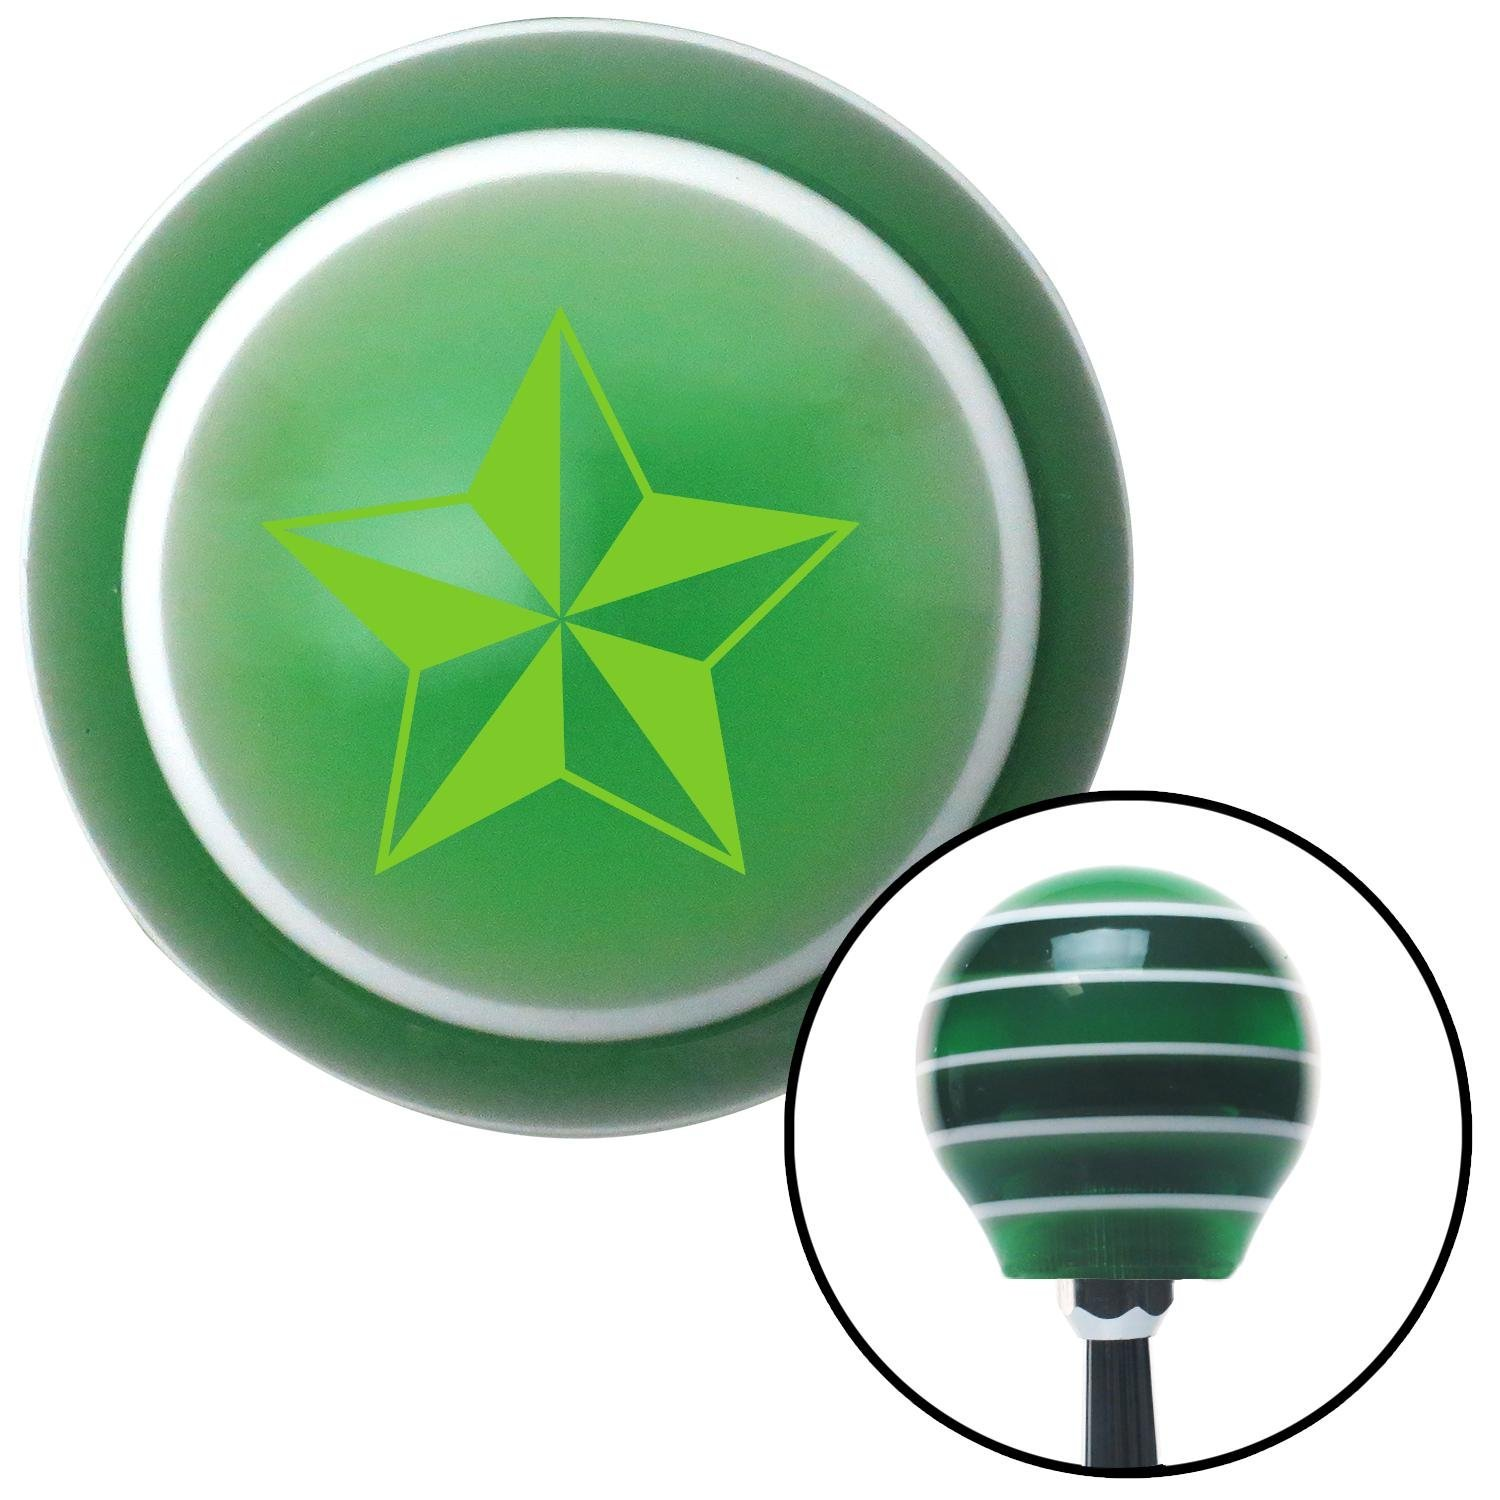 Green 5 Point Star American Shifter 128261 Green Stripe Shift Knob with M16 x 1.5 Insert